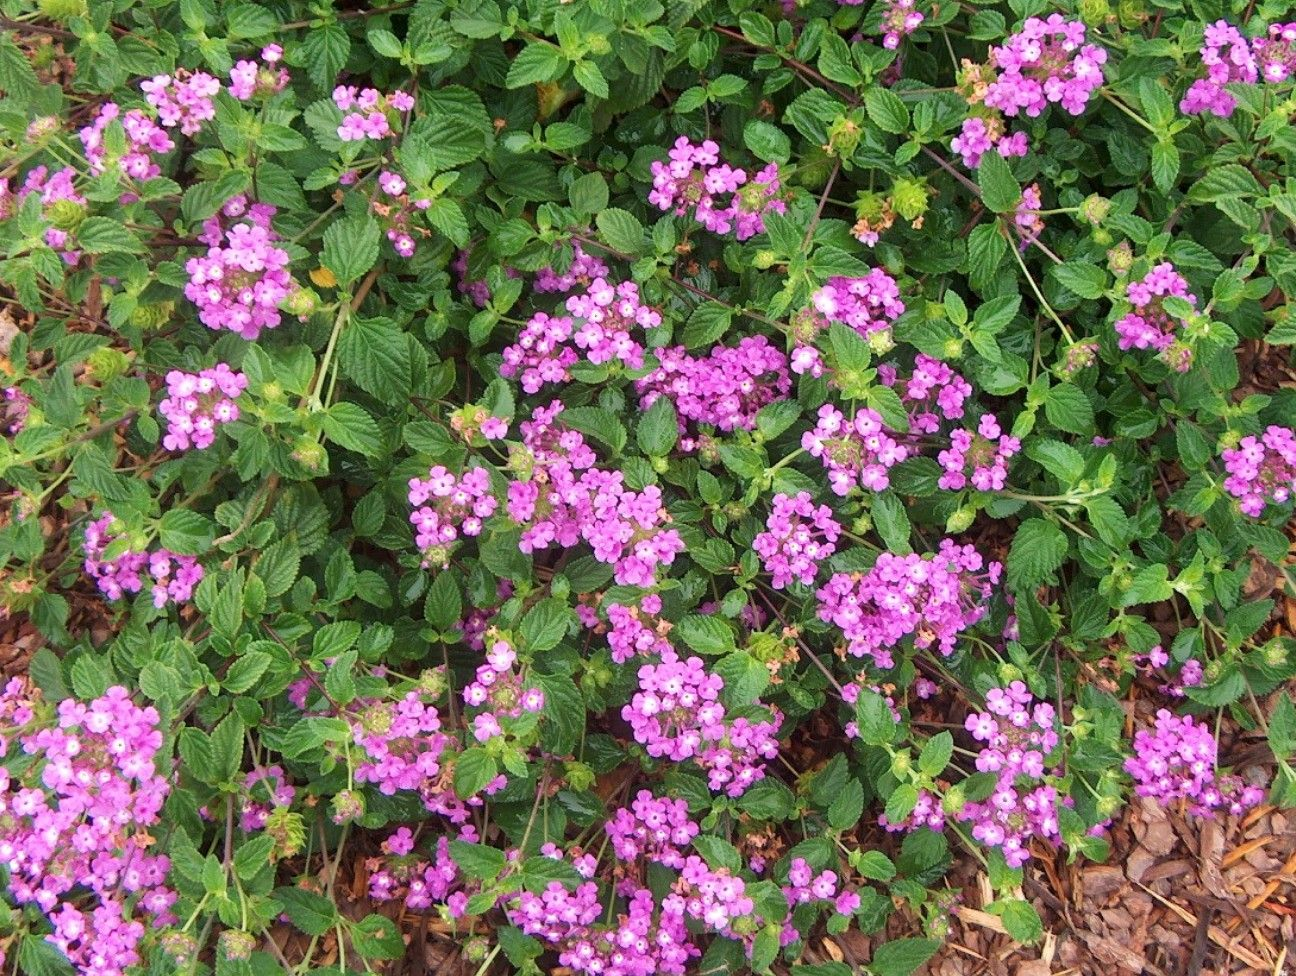 A Purple Variety Good As A Medium To Tall Ground Cover Grows Well In Beds  And Containers Gives Color In The Garden All The Warm Months Of The Year